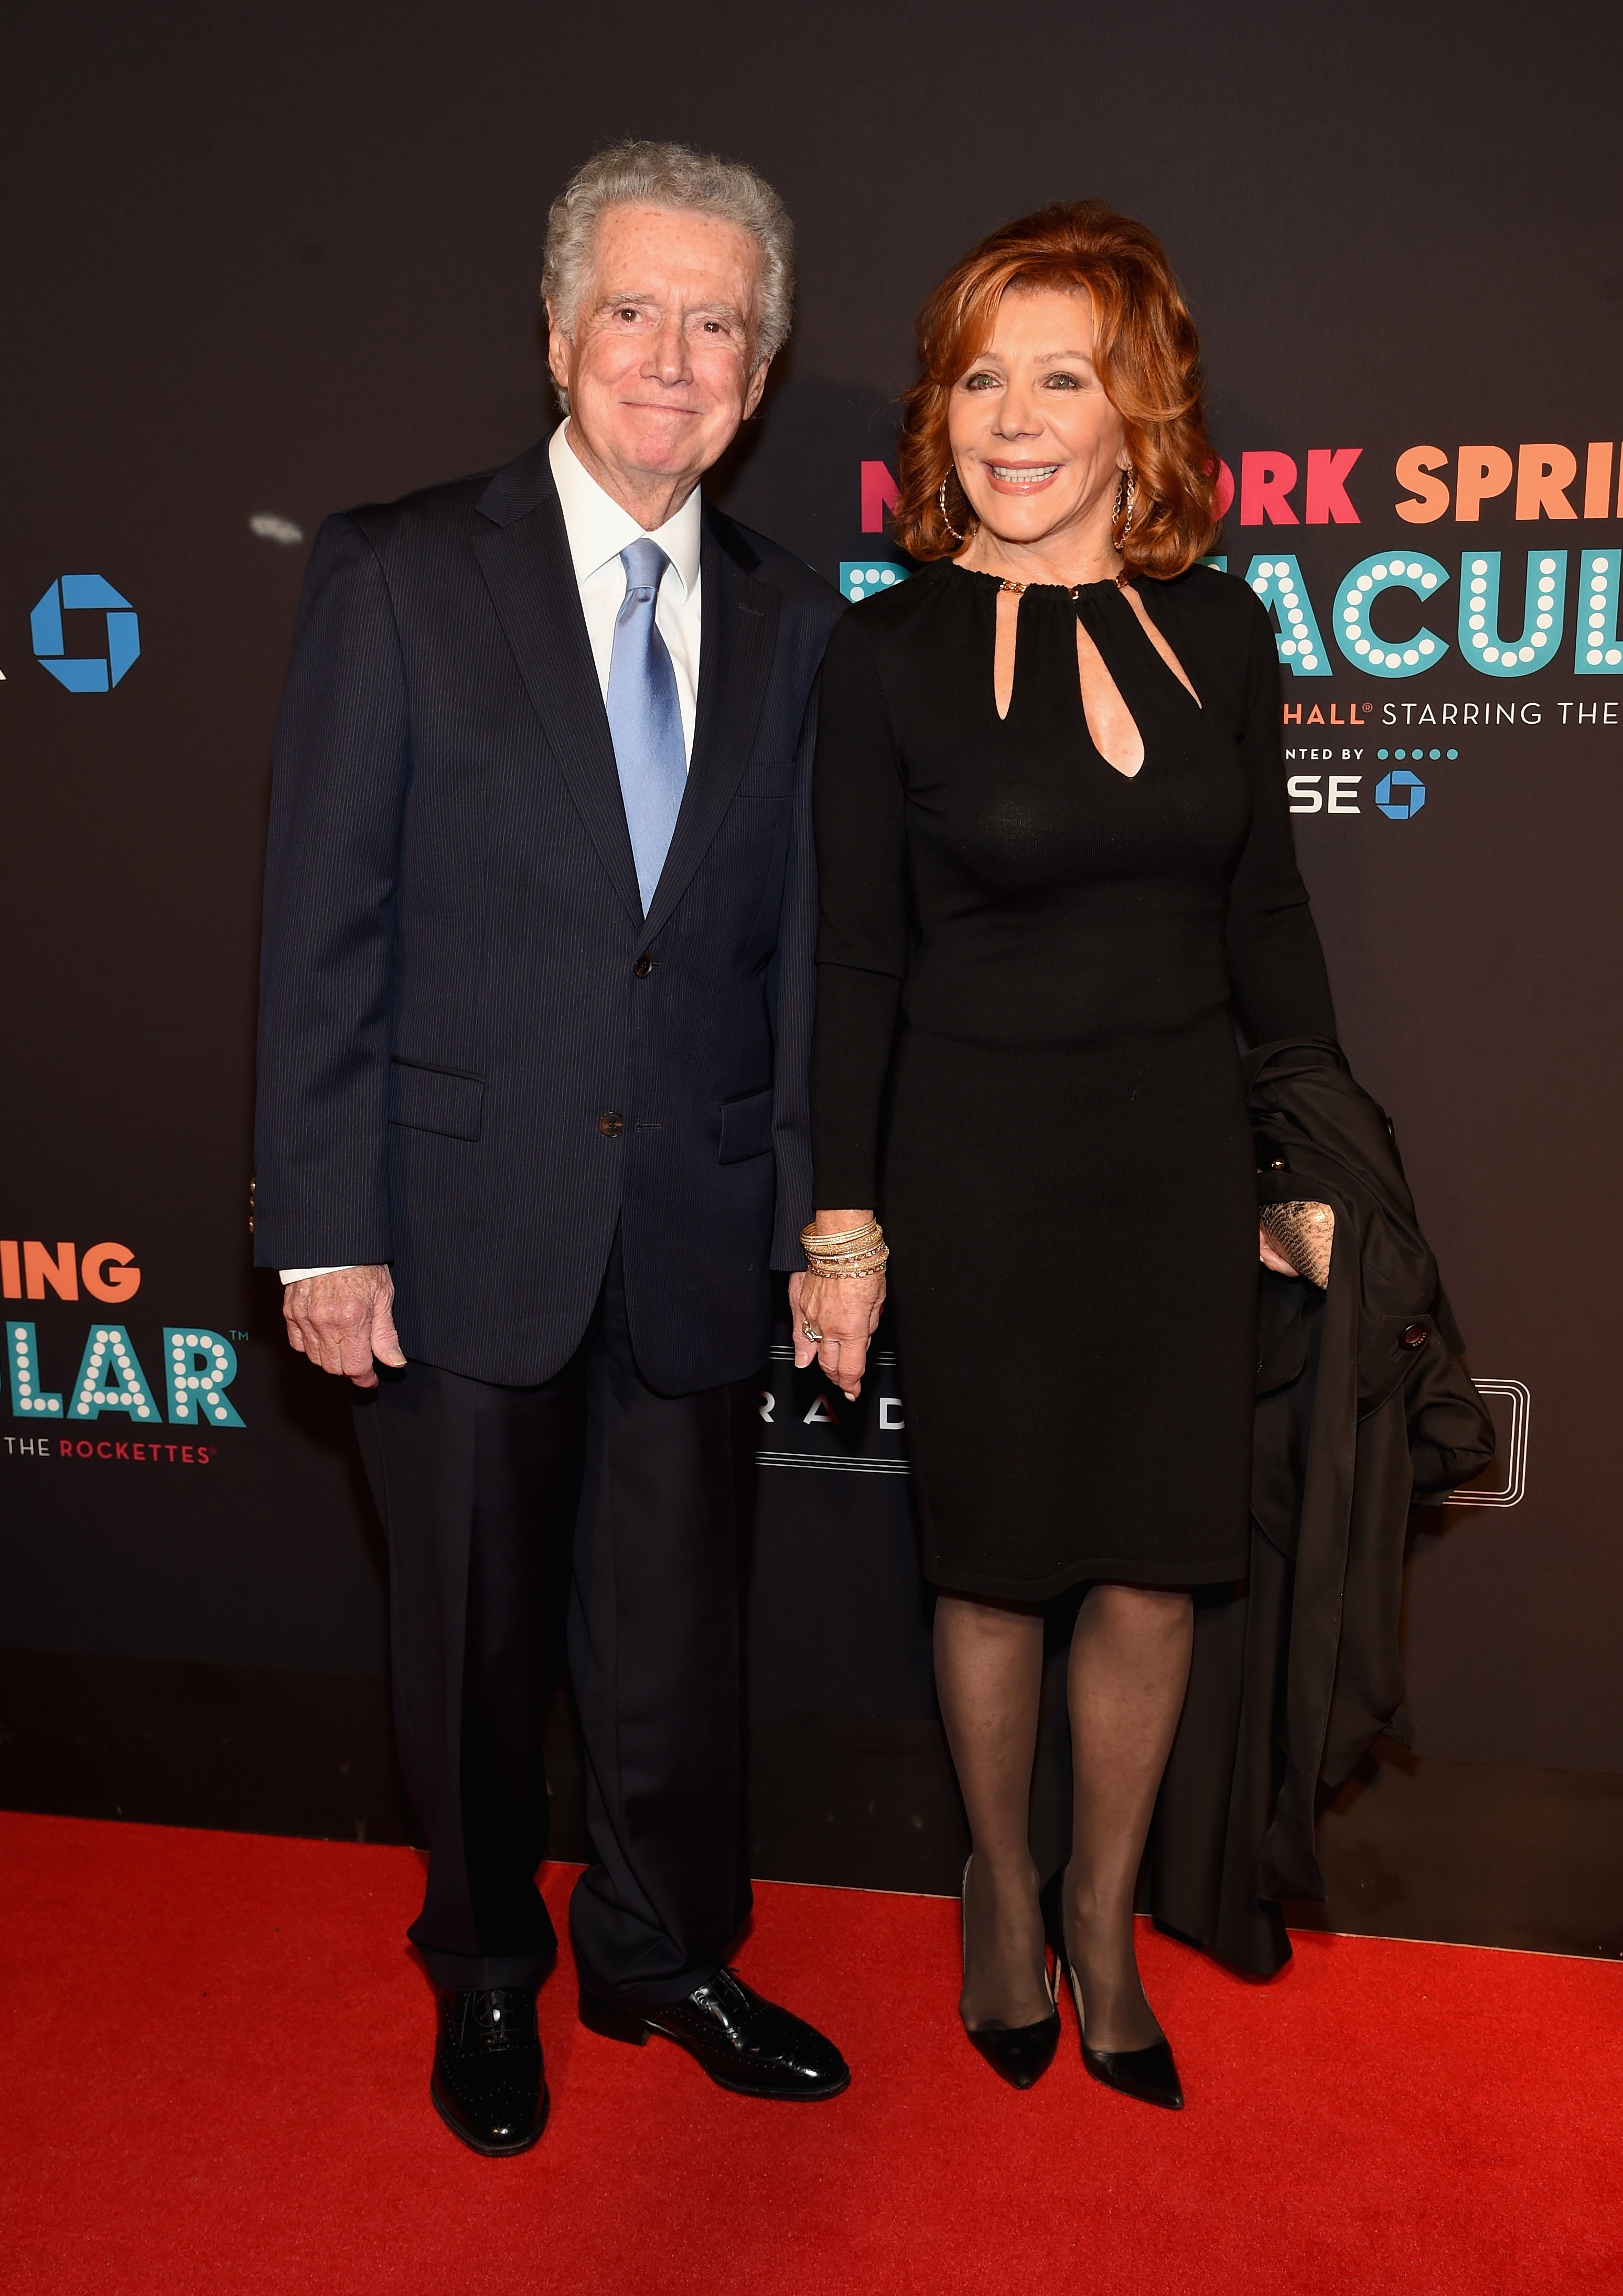 Regis and Joy Philbin attend the New York Spring Spectacular in New York City on March 26, 2015 | Photo: Getty Images